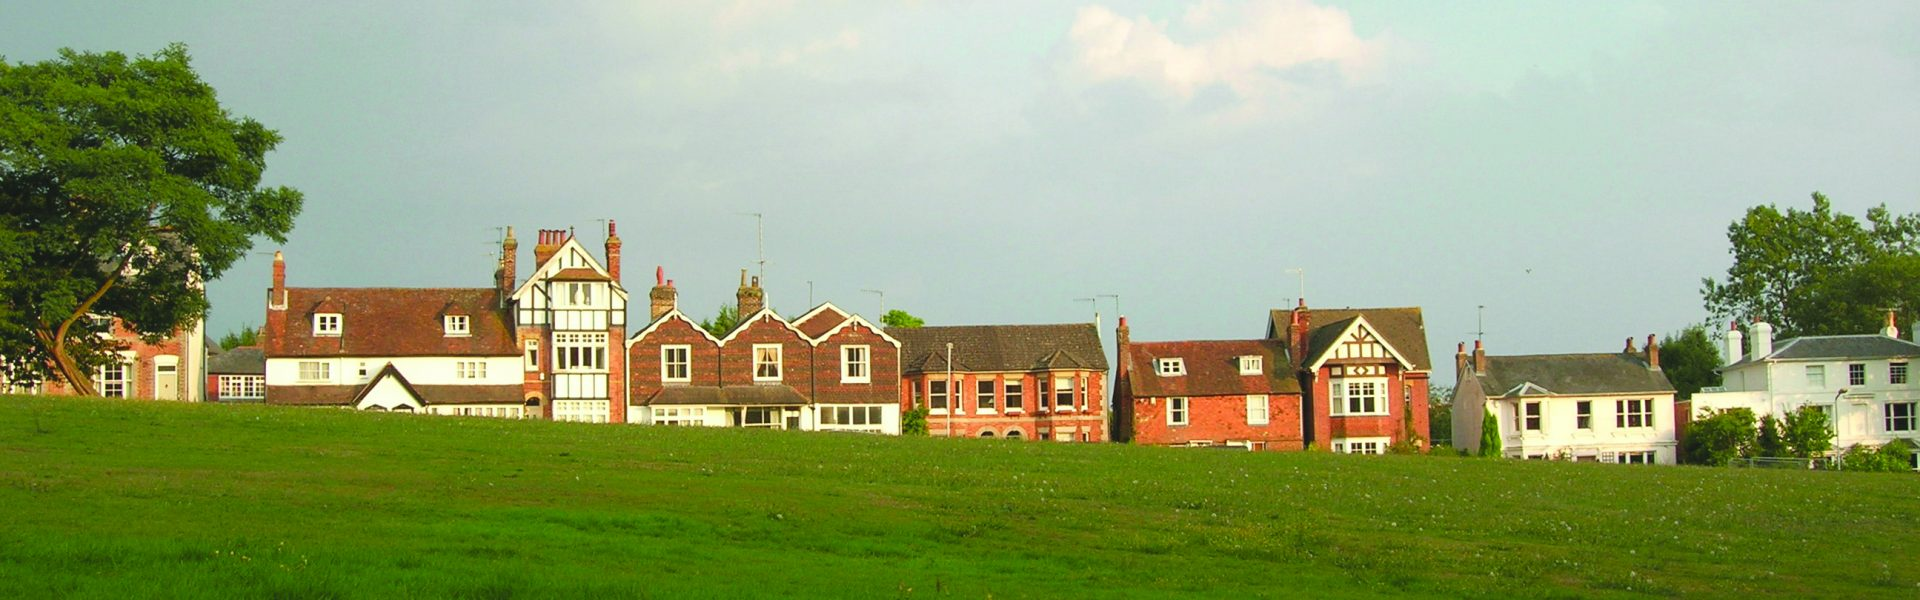 Houses in Holden Road as viewed from Southborough Common